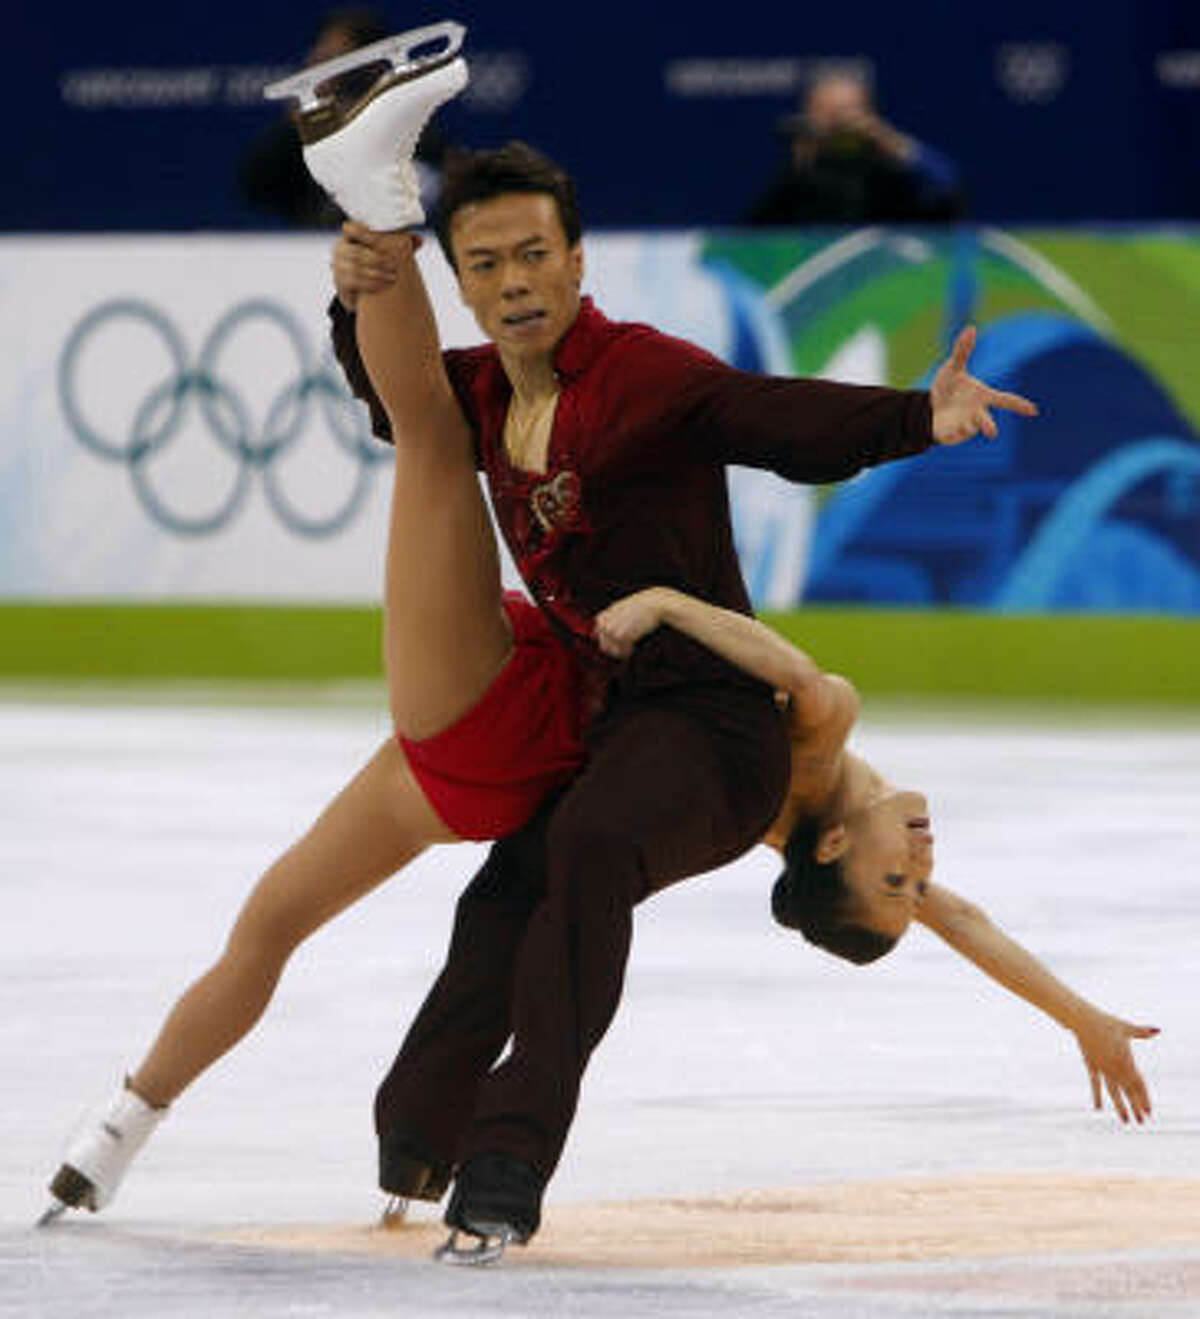 Xue Shen and her fiance Hongbo Zhao of China captured the gold after winning bronze in 2002 and 2006.